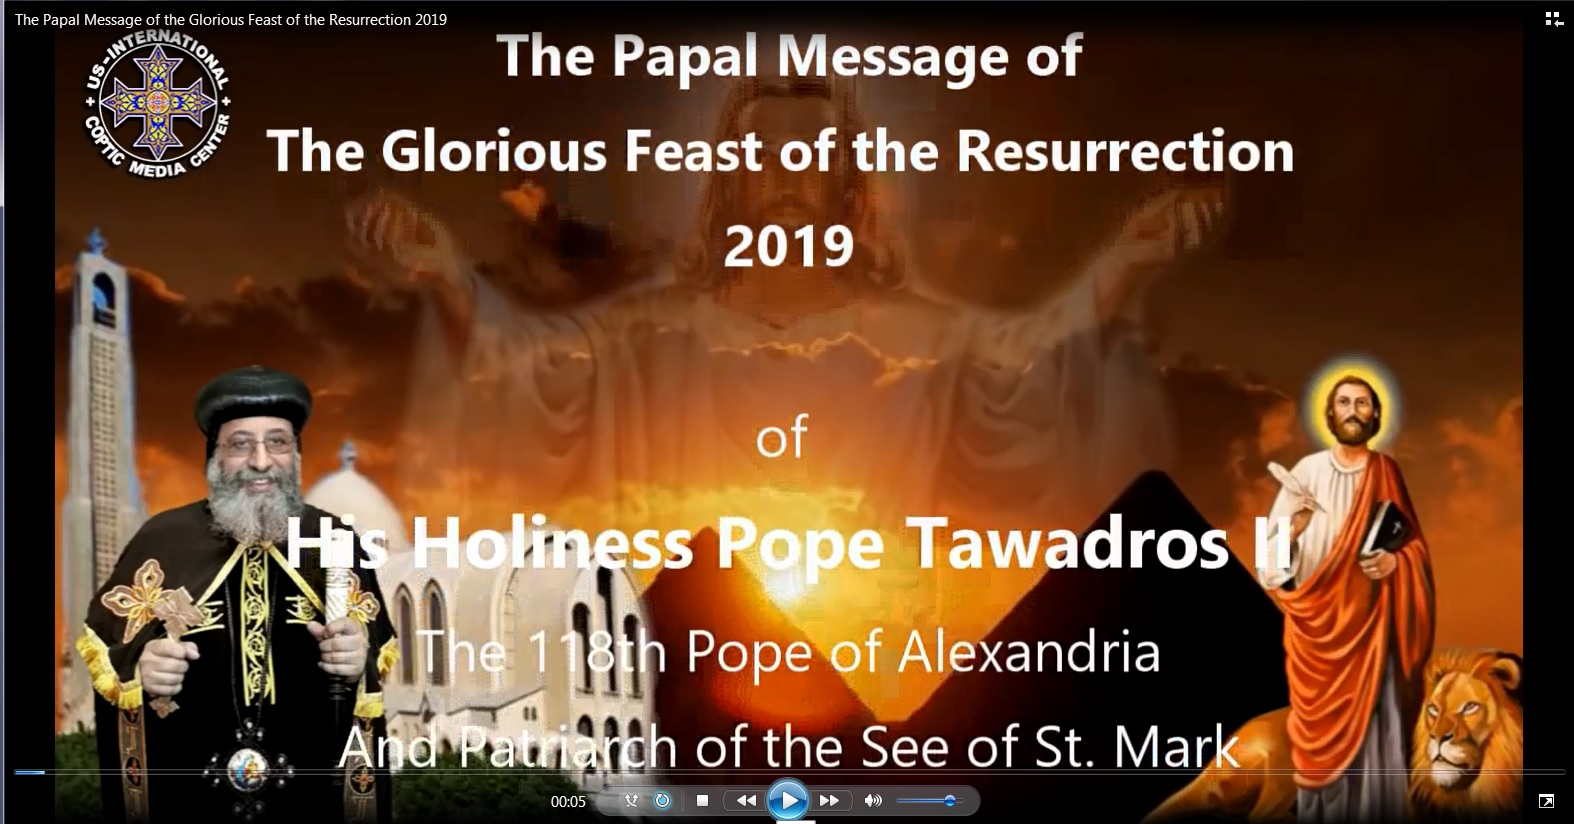 The Papal Message of the Glorious Feast of the Resurrection 2019